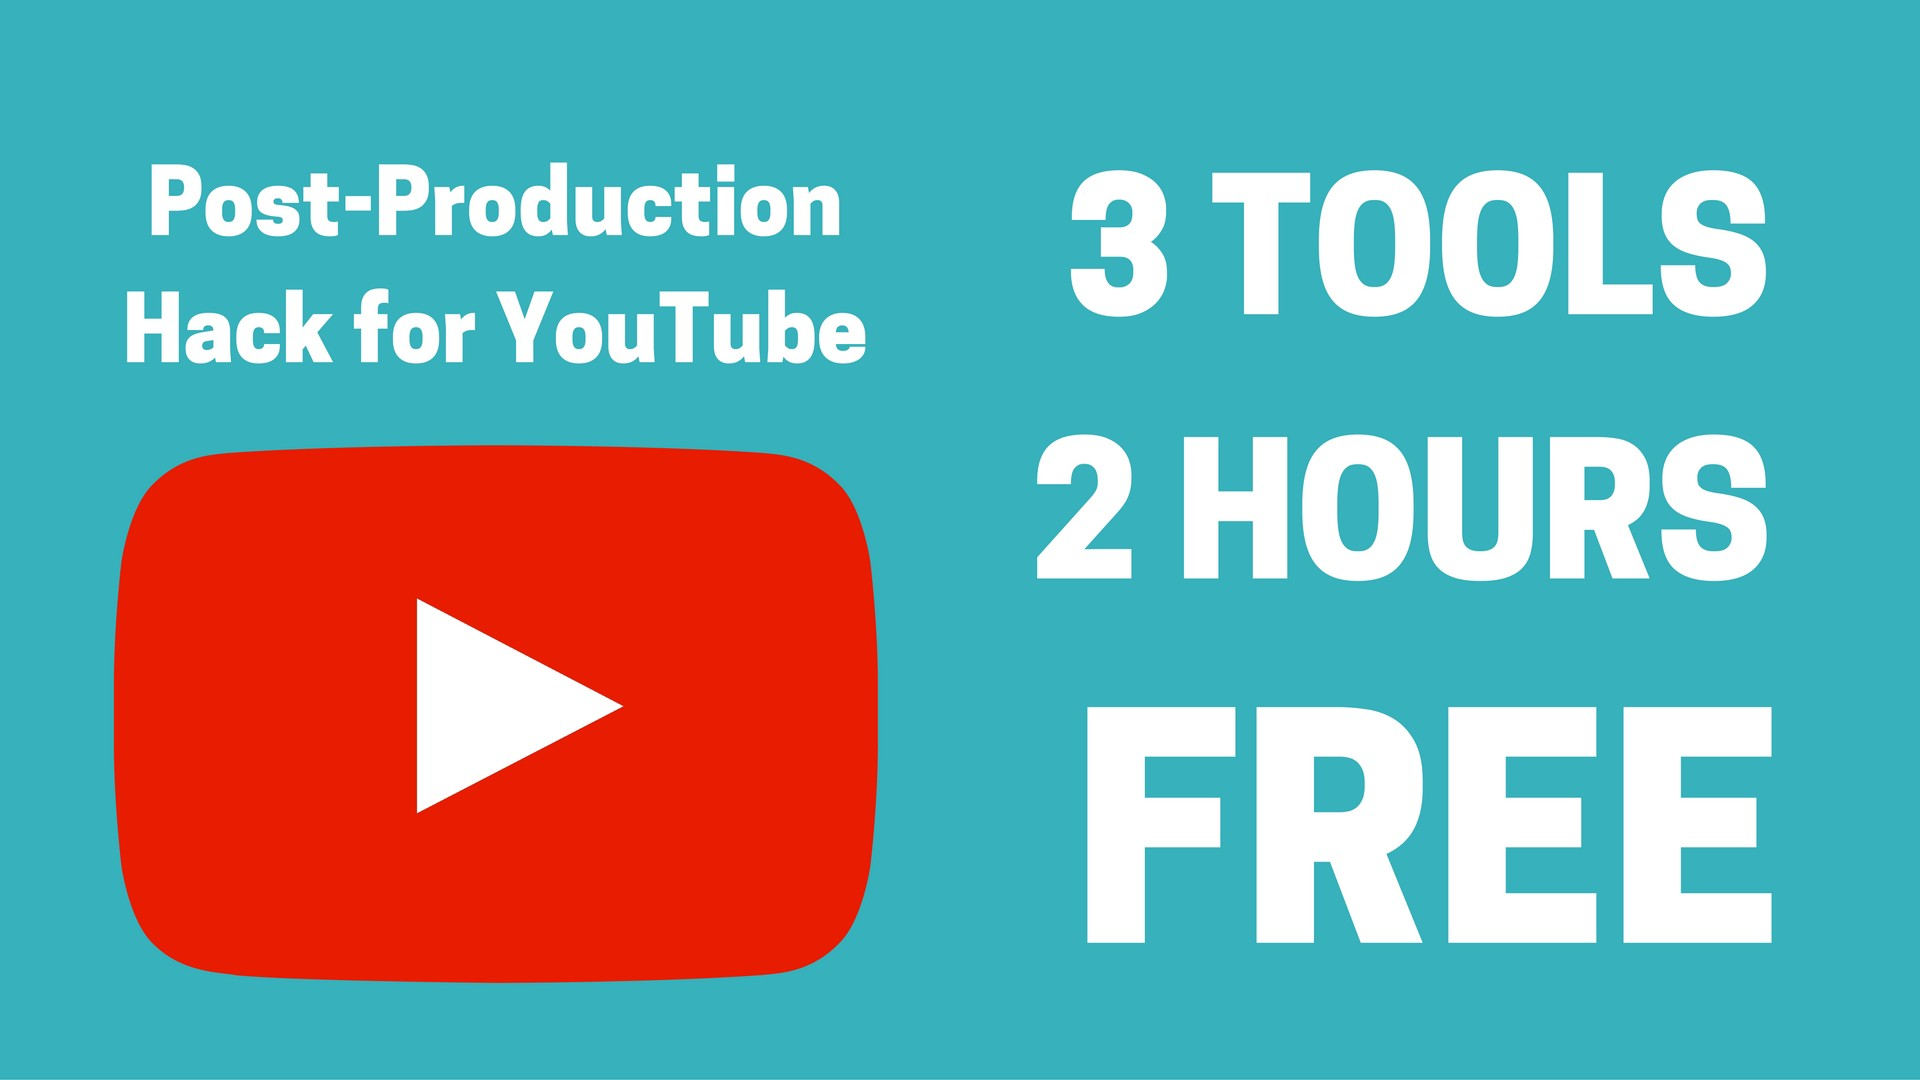 YouTube Hack: Video Post-Production in 2 Hours for Free